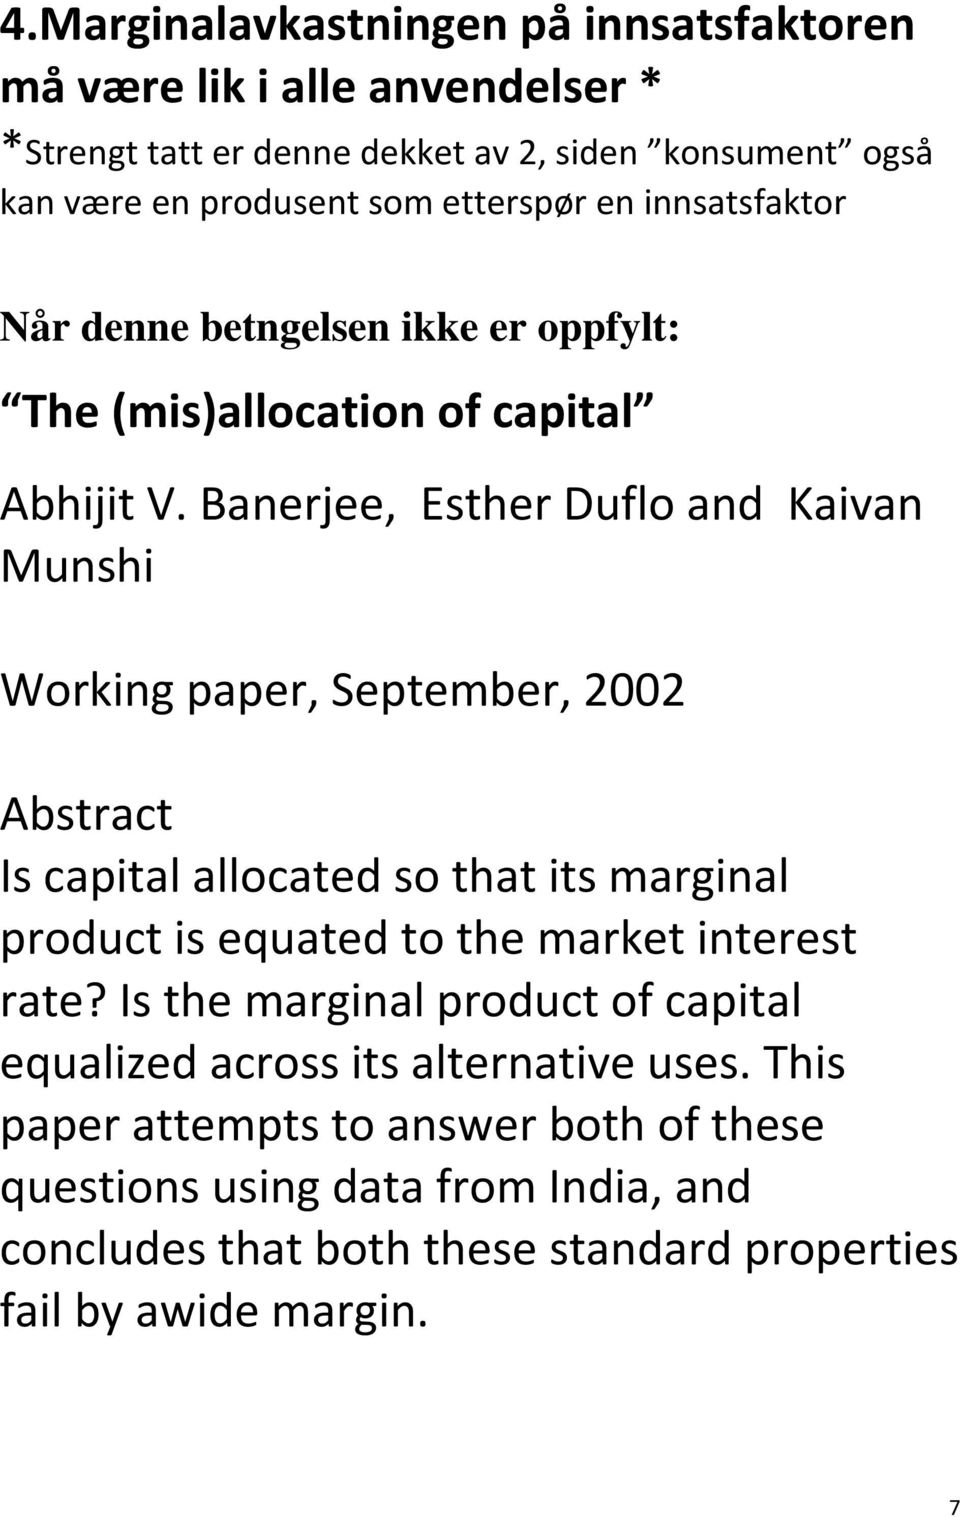 Banerjee, Esther Duflo and Kaivan Munshi Working paper, September, 2002 Abstract Is capital allocated so that its marginal product is equated to the market interest